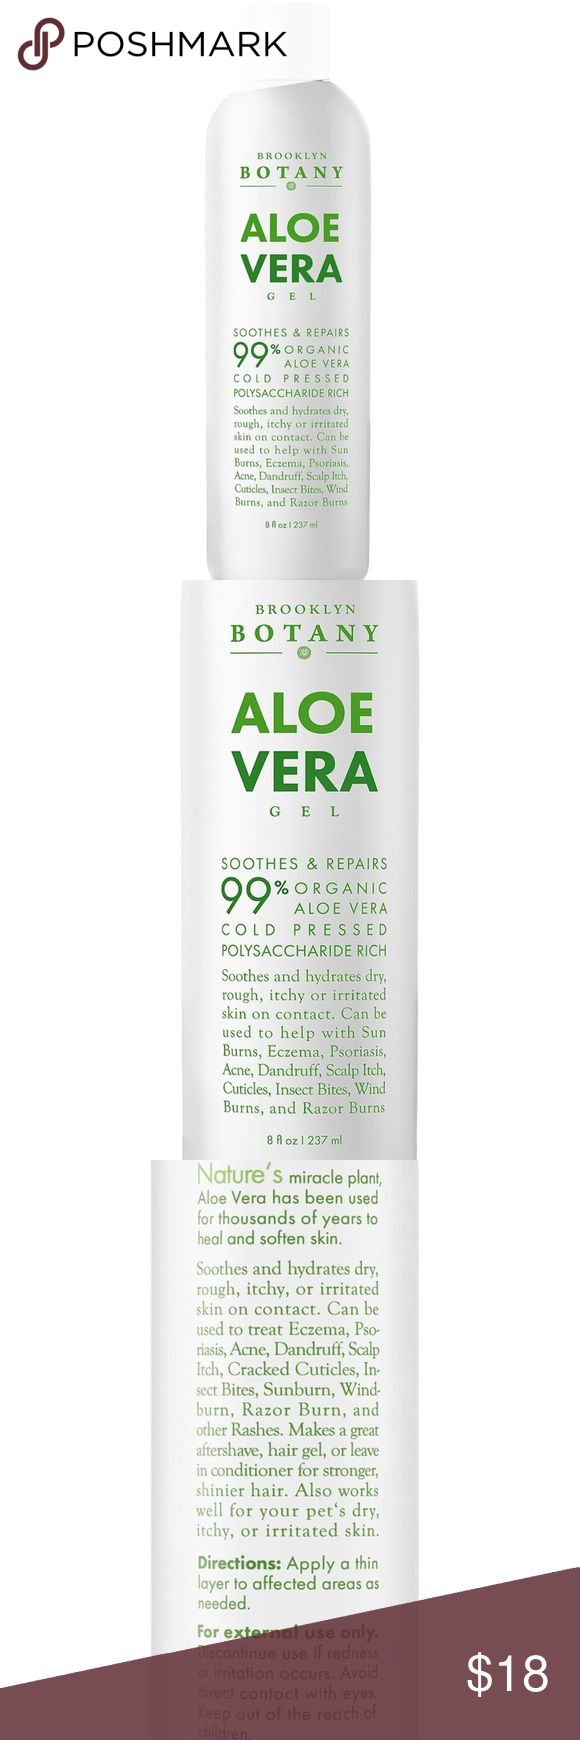 Aloe Vera Gel 8 oz - Organic Cold Pressed Aloe NEW Aloe Vera Gel 8 oz - Soothes and Hydrates Dry, Itchy, or Irritated Skin; great for Acne, Dandruff, Sunburn, Rashes - Brooklyn Botany. 100% PURE AND NATURAL: Our Aloe Vera Gel is 100% Natural, containing 99.75% Organic Aloe Vera Gel; No Added Color, Fragrance, or Alcohol. CONTAINS VITAMIN C: Our Organic Aloe Vera Soothes and hydrates dry, itchy, or irritated skin; great for Acne treatment, Dandruff treatment, Scalp Itch, Insect Bites, Sun…